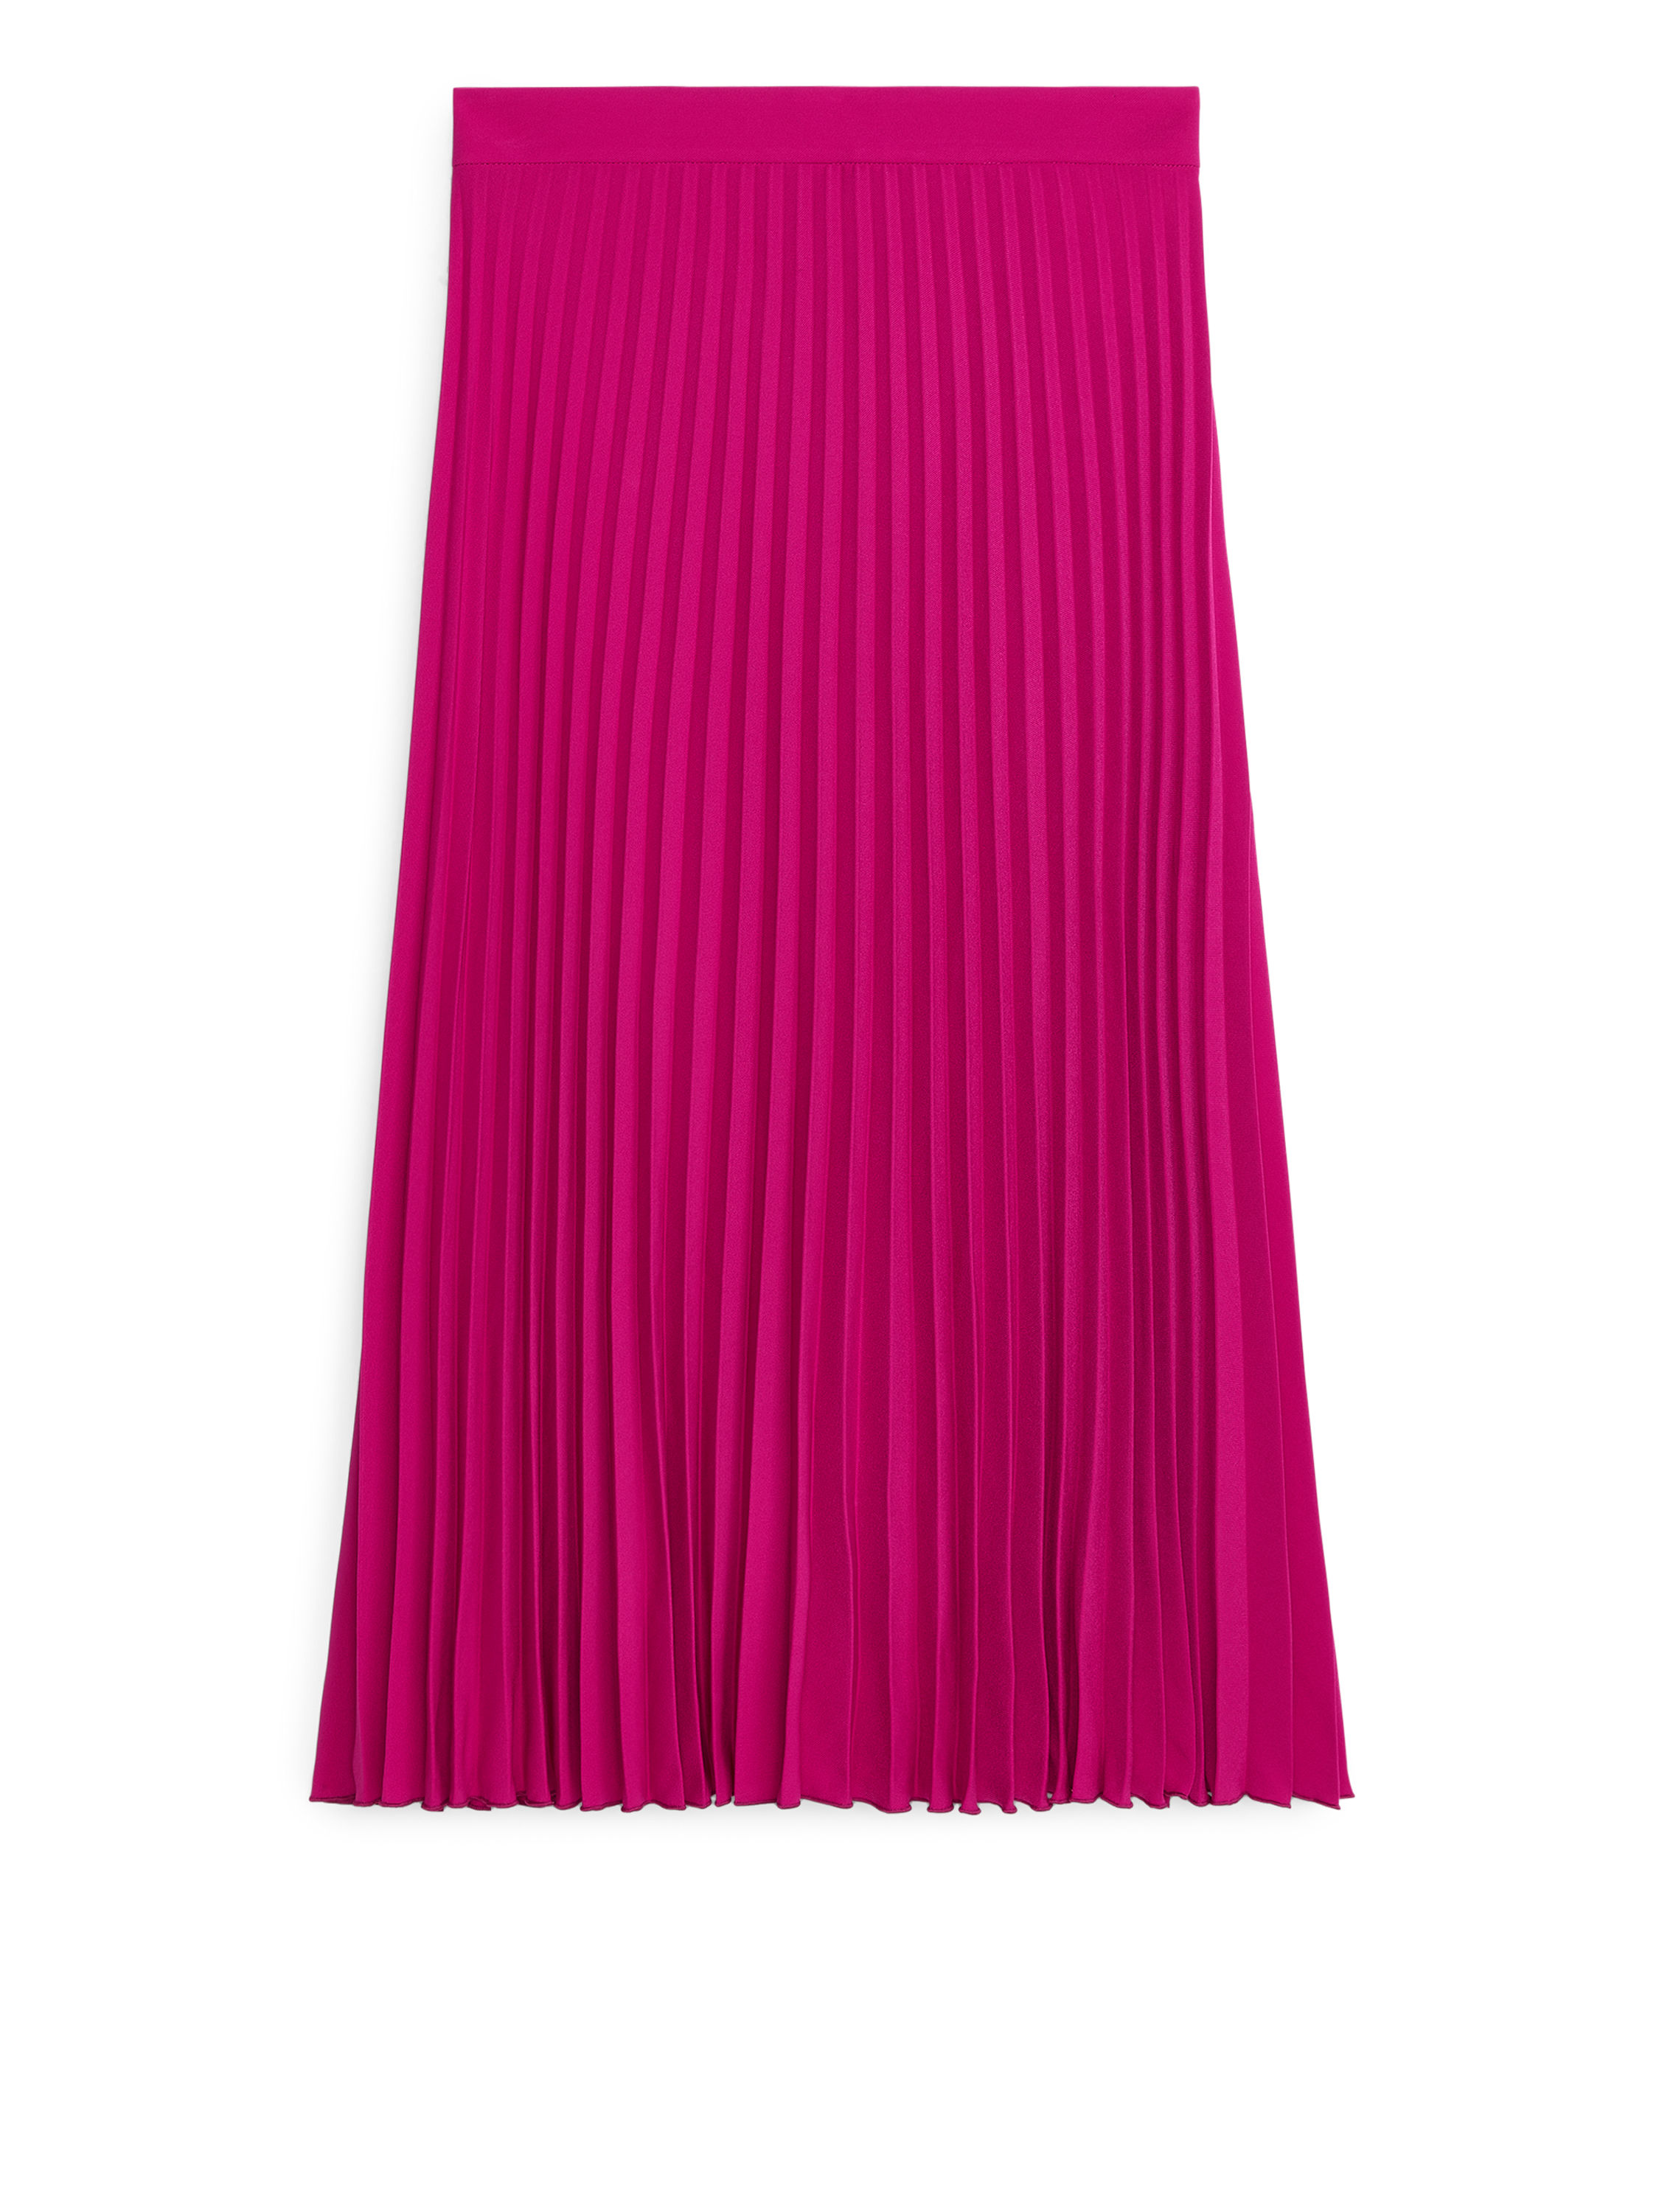 Fabric Swatch image of Arket pleated crepe skirt in pink